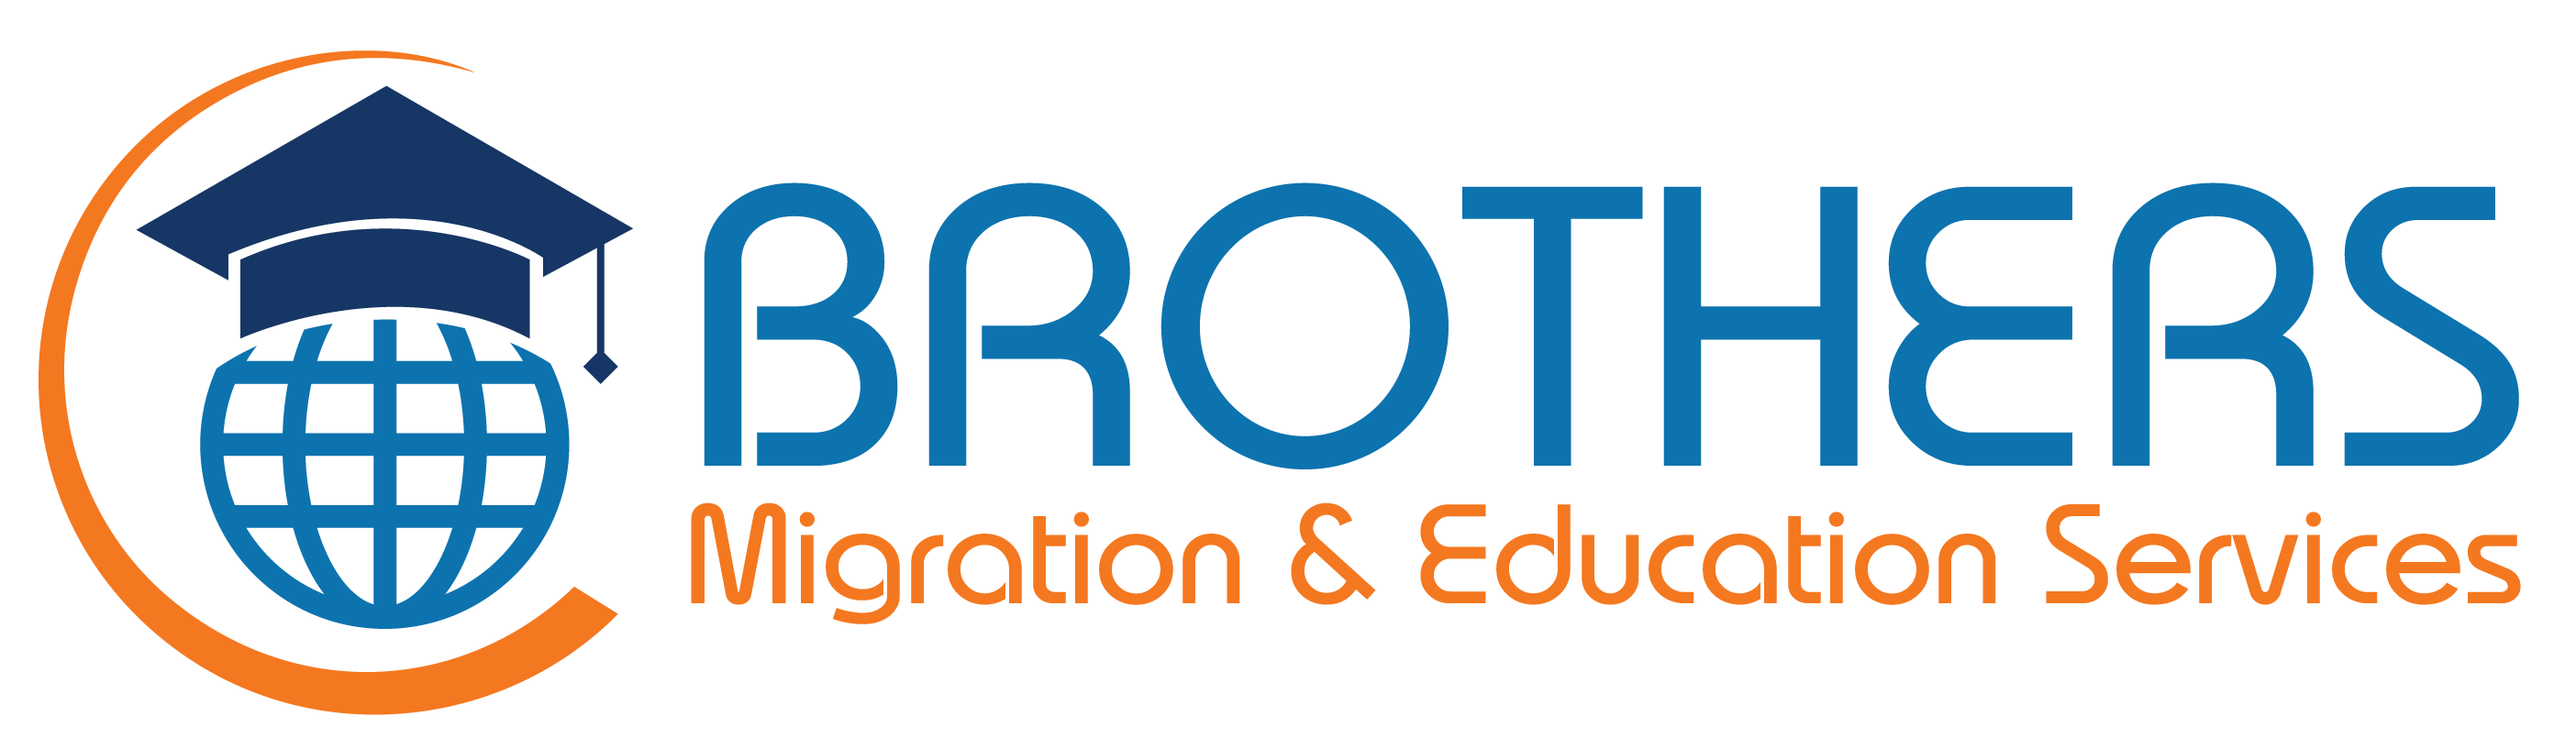 Brothers Migration & Education Services